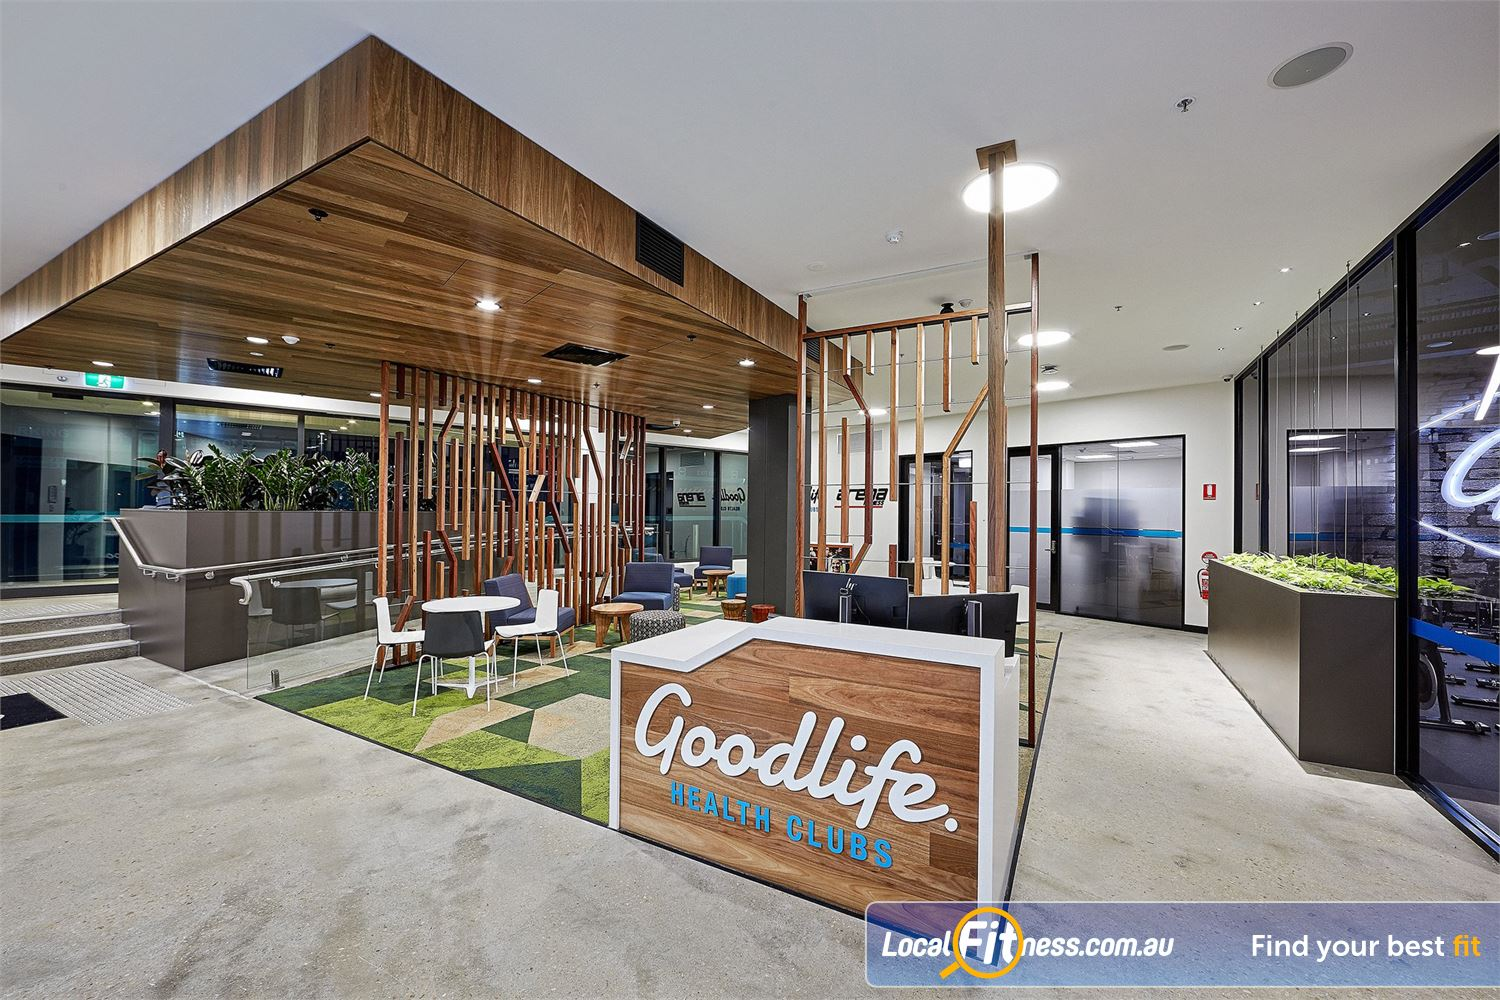 Goodlife Health Clubs Near Tennyson Comfortable and member lounge area.